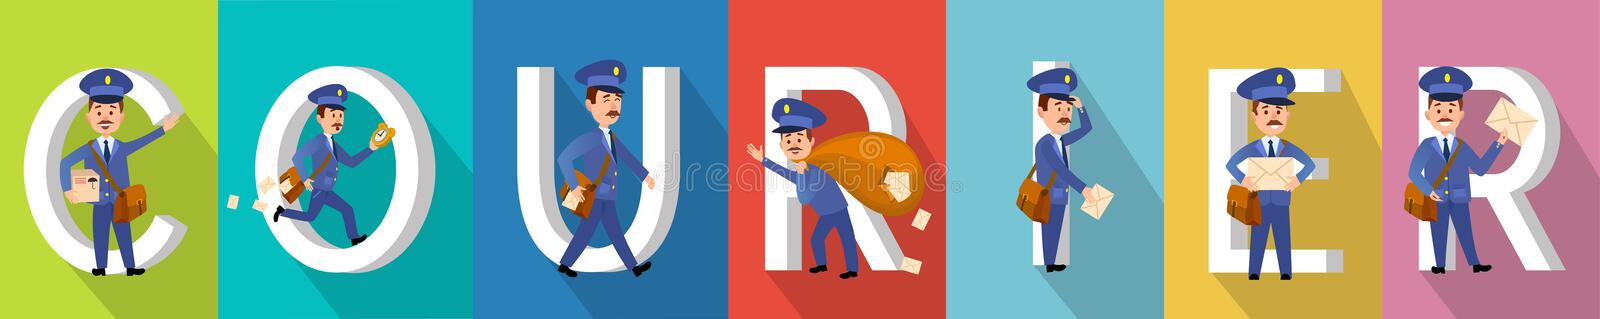 Raccolta di Delivery Character Colourful del CORRIERE illustrazione di stock